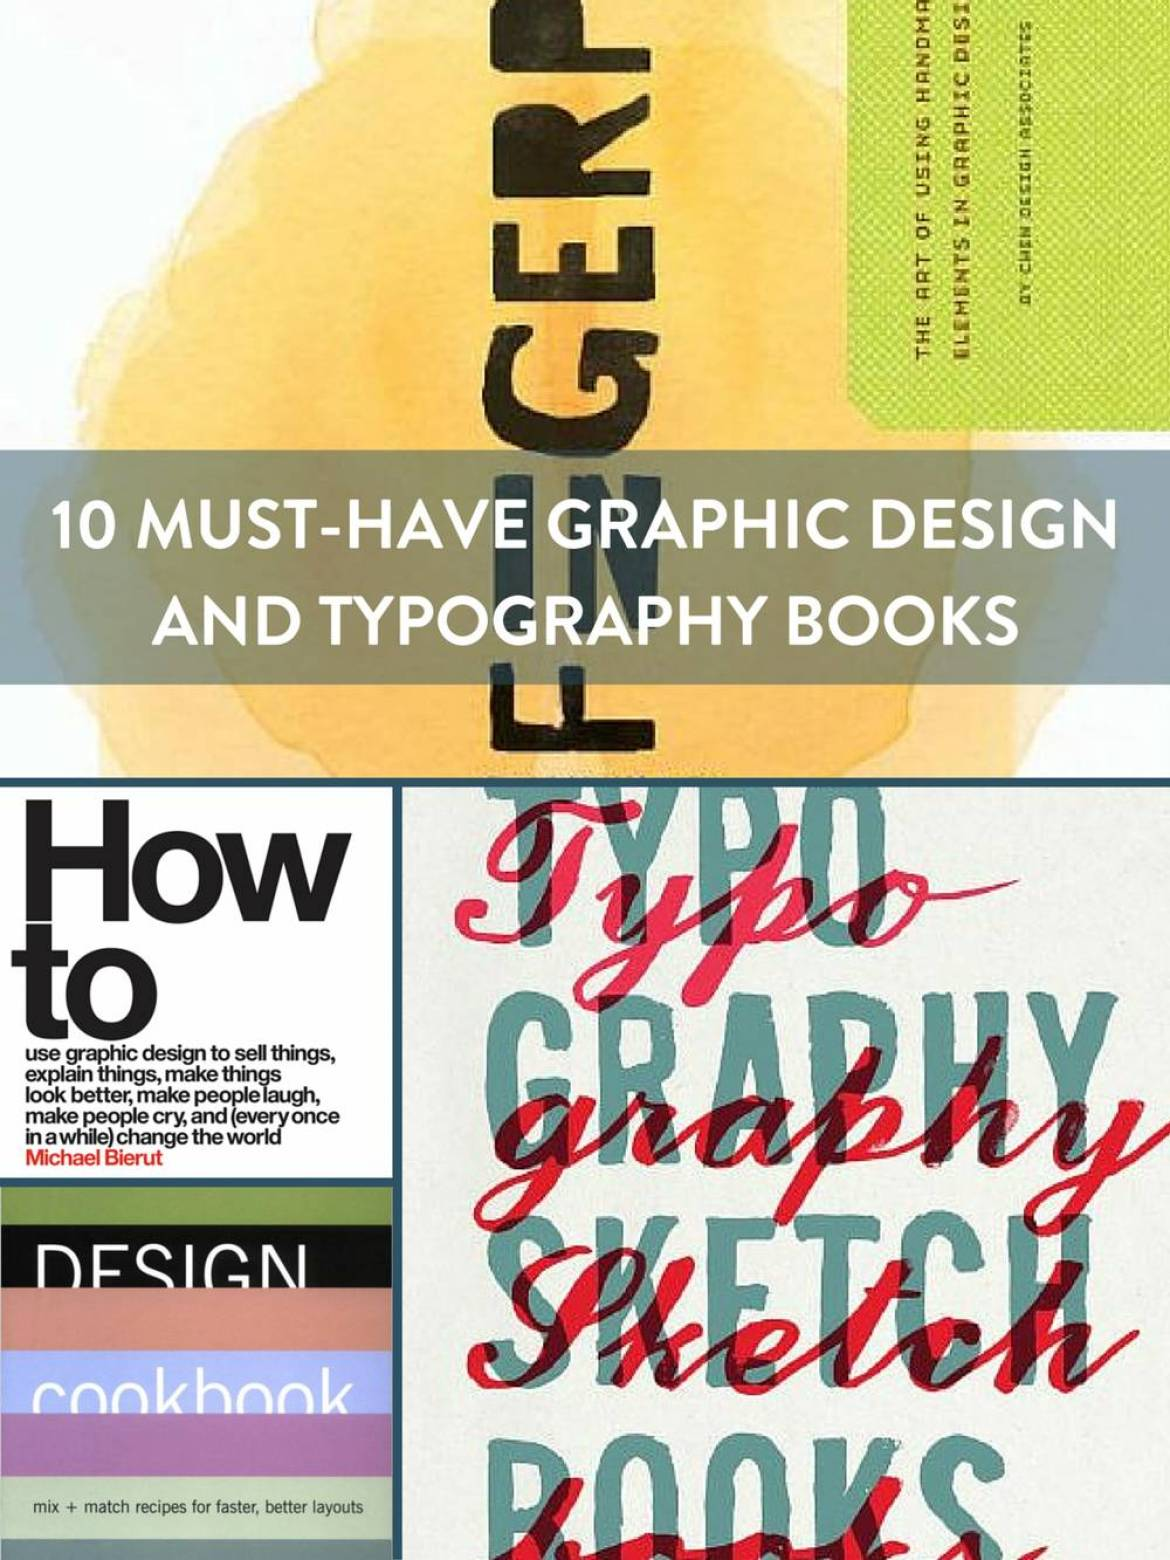 Graphic Design and Typography Books